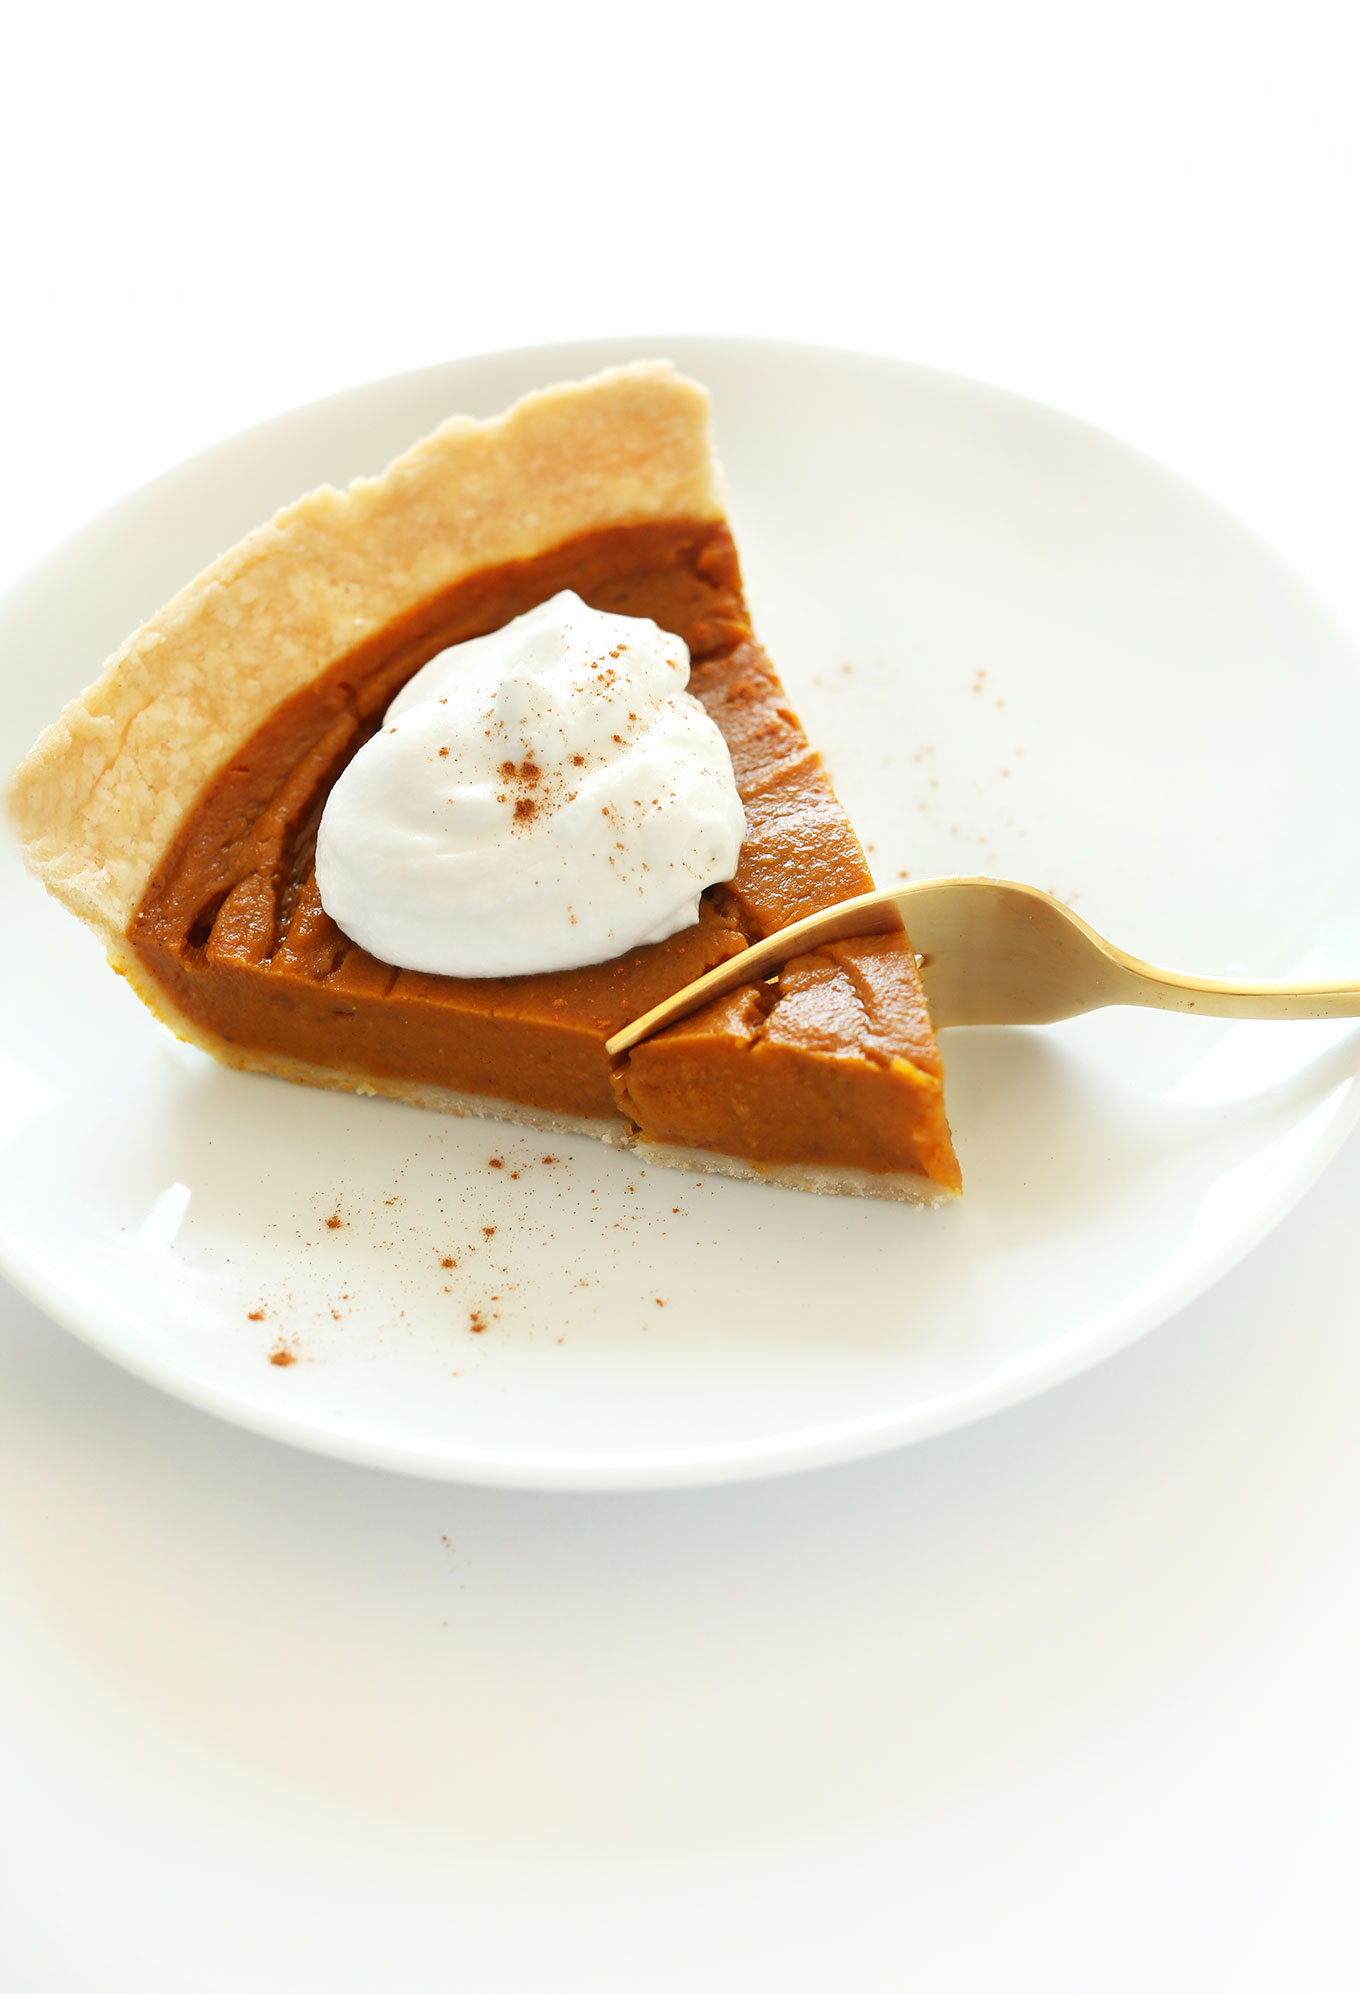 Grabbing a bite from the tip of a slice of vegan gluten-free pumpkin pie